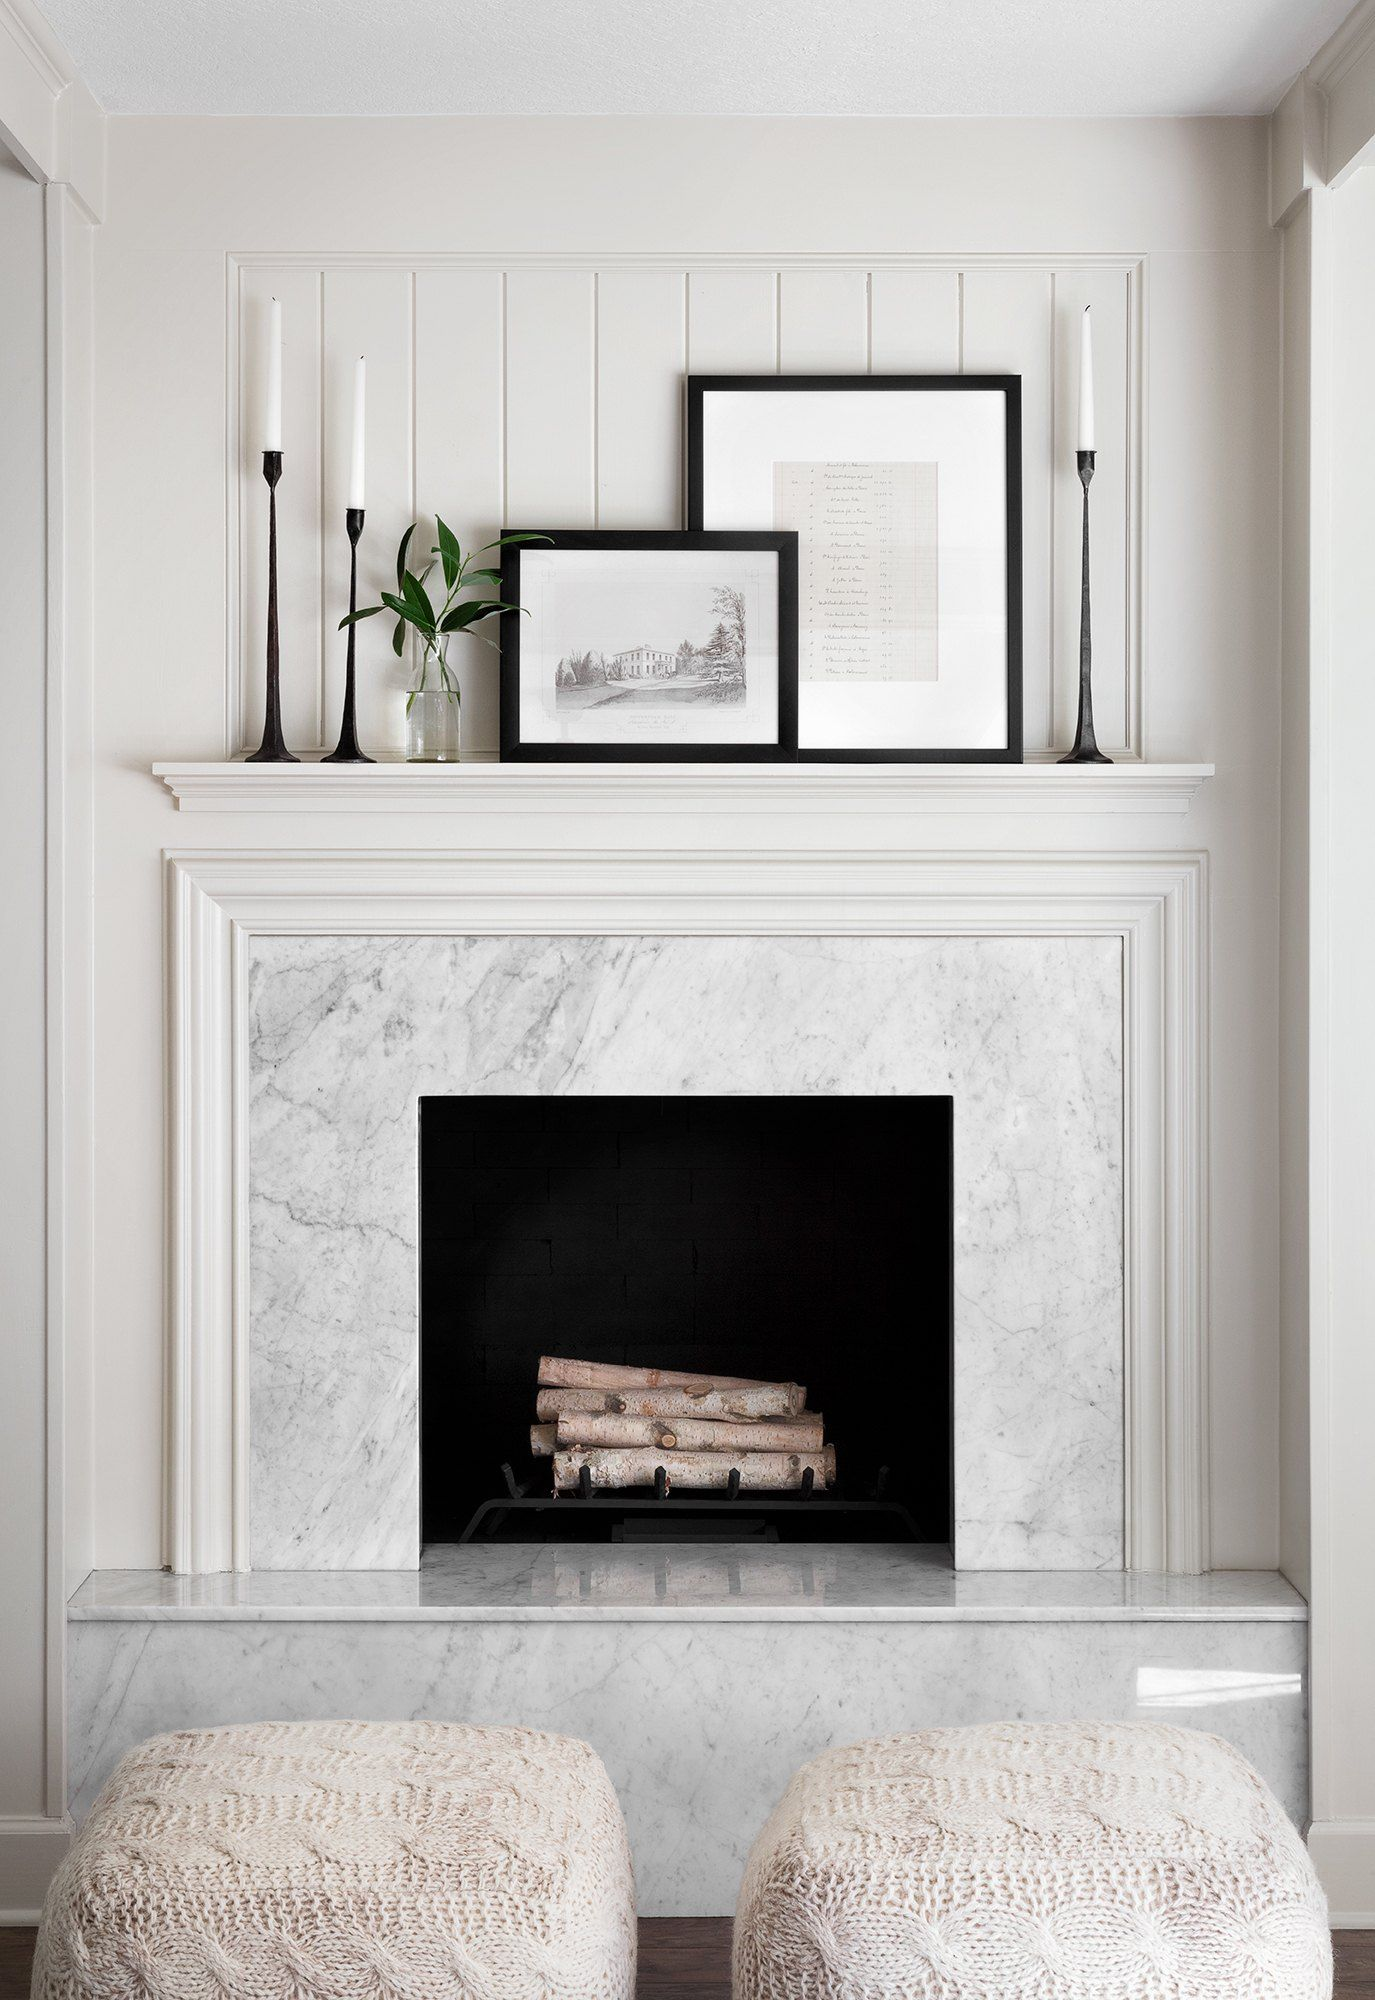 This fireplace is one of my favorite features of the sandvalls home the crisp clean lines of the monochromatic texture combined with the coffered ceiling